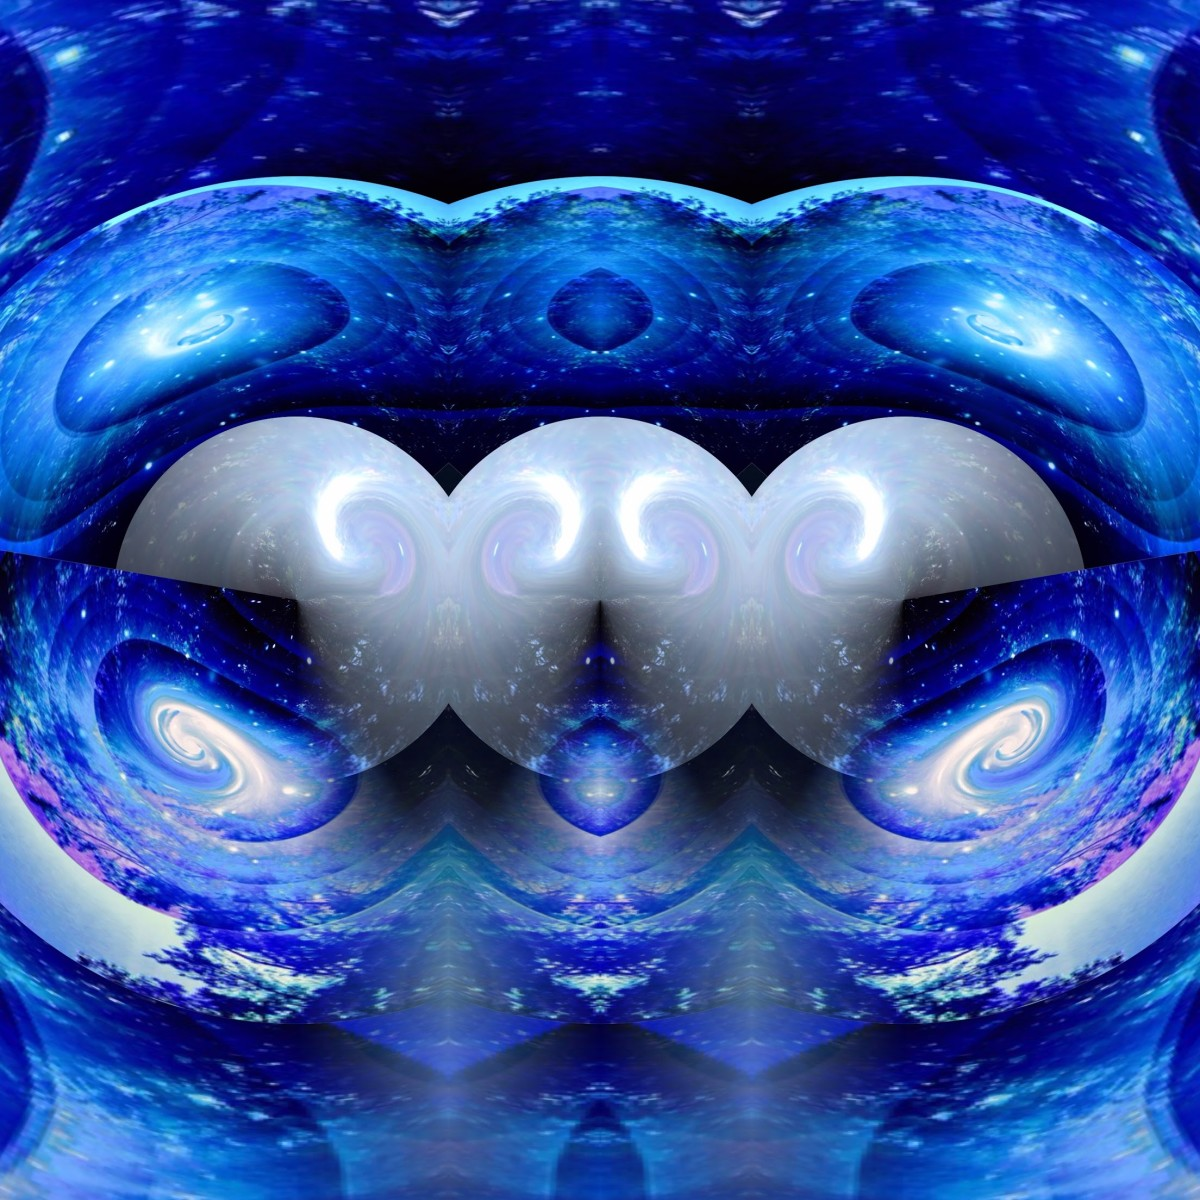 Universal Blue Womb by Claire Jones